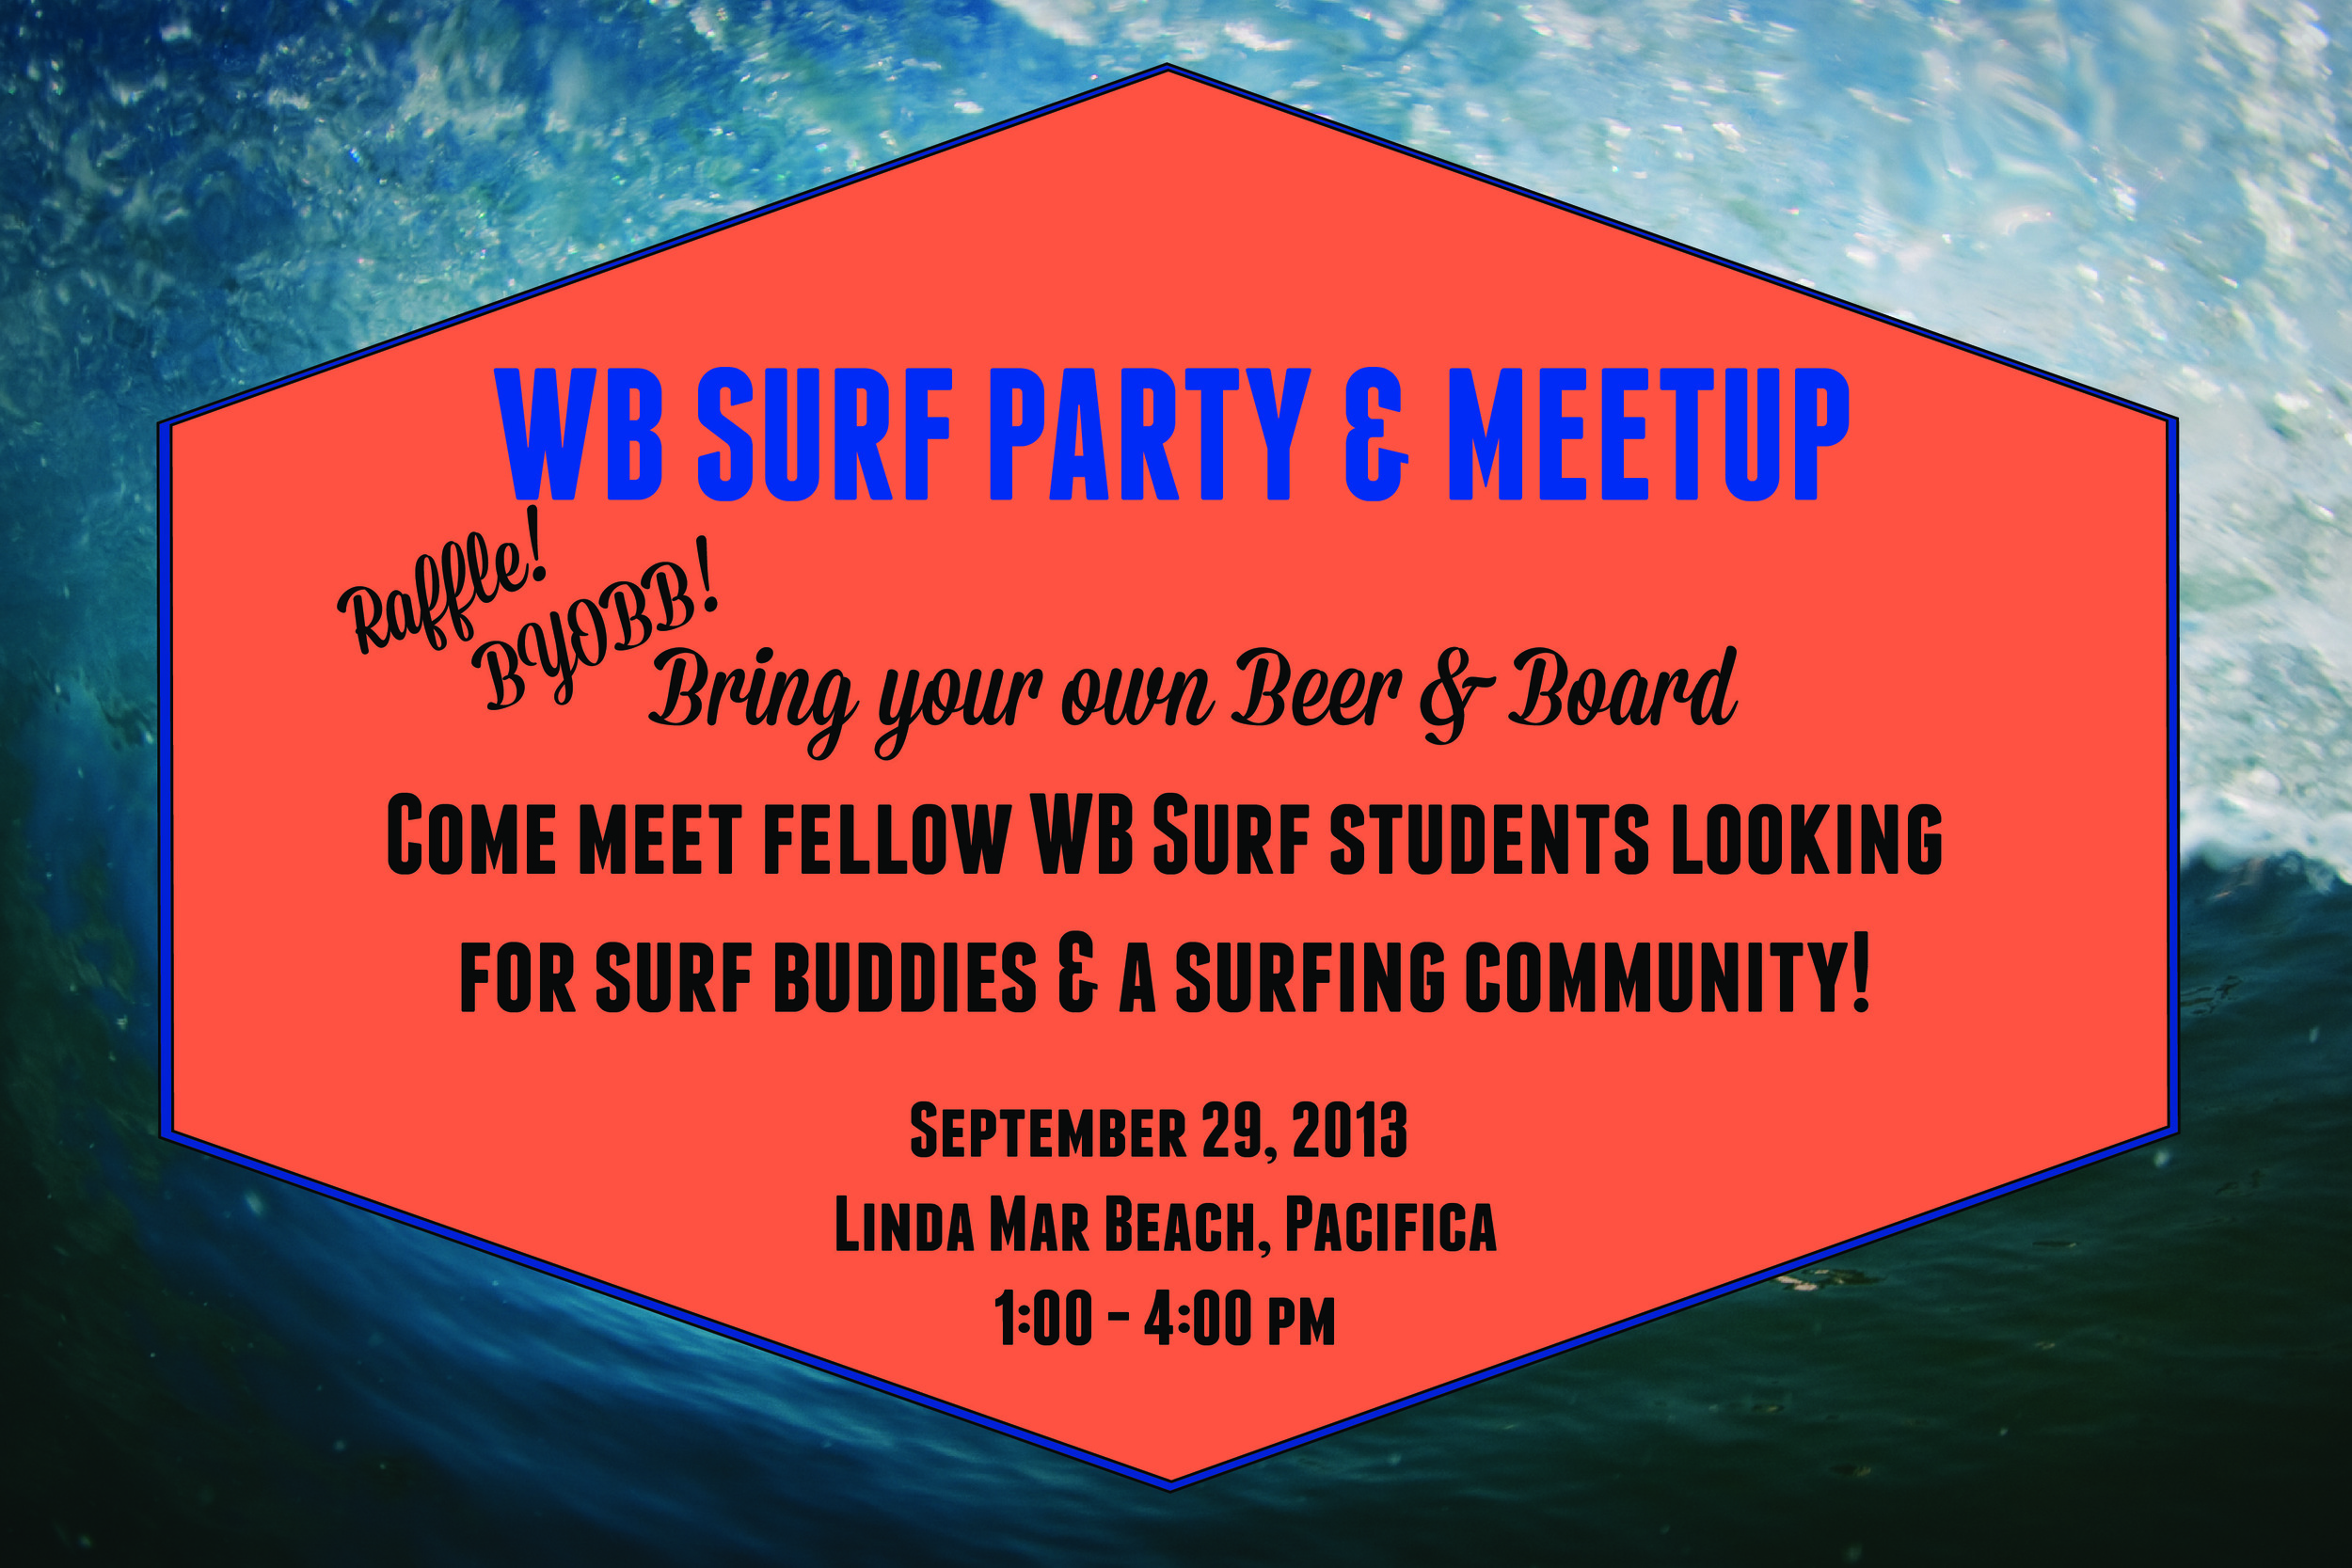 SurfParty-page-0.jpg